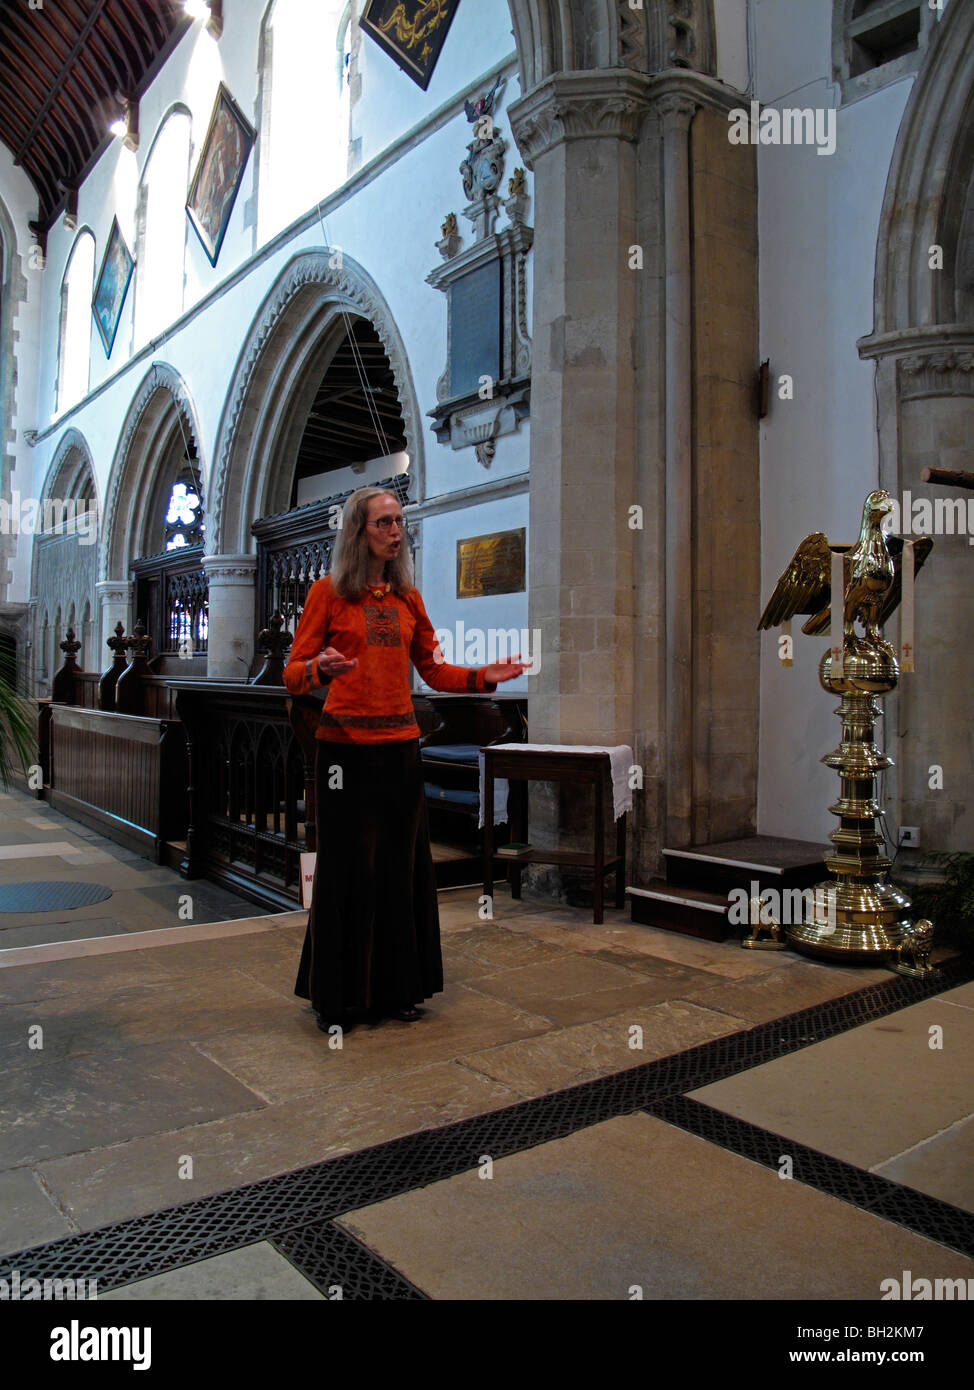 Recital in St Mary's church during the Eastbourne Festival - Stock Image